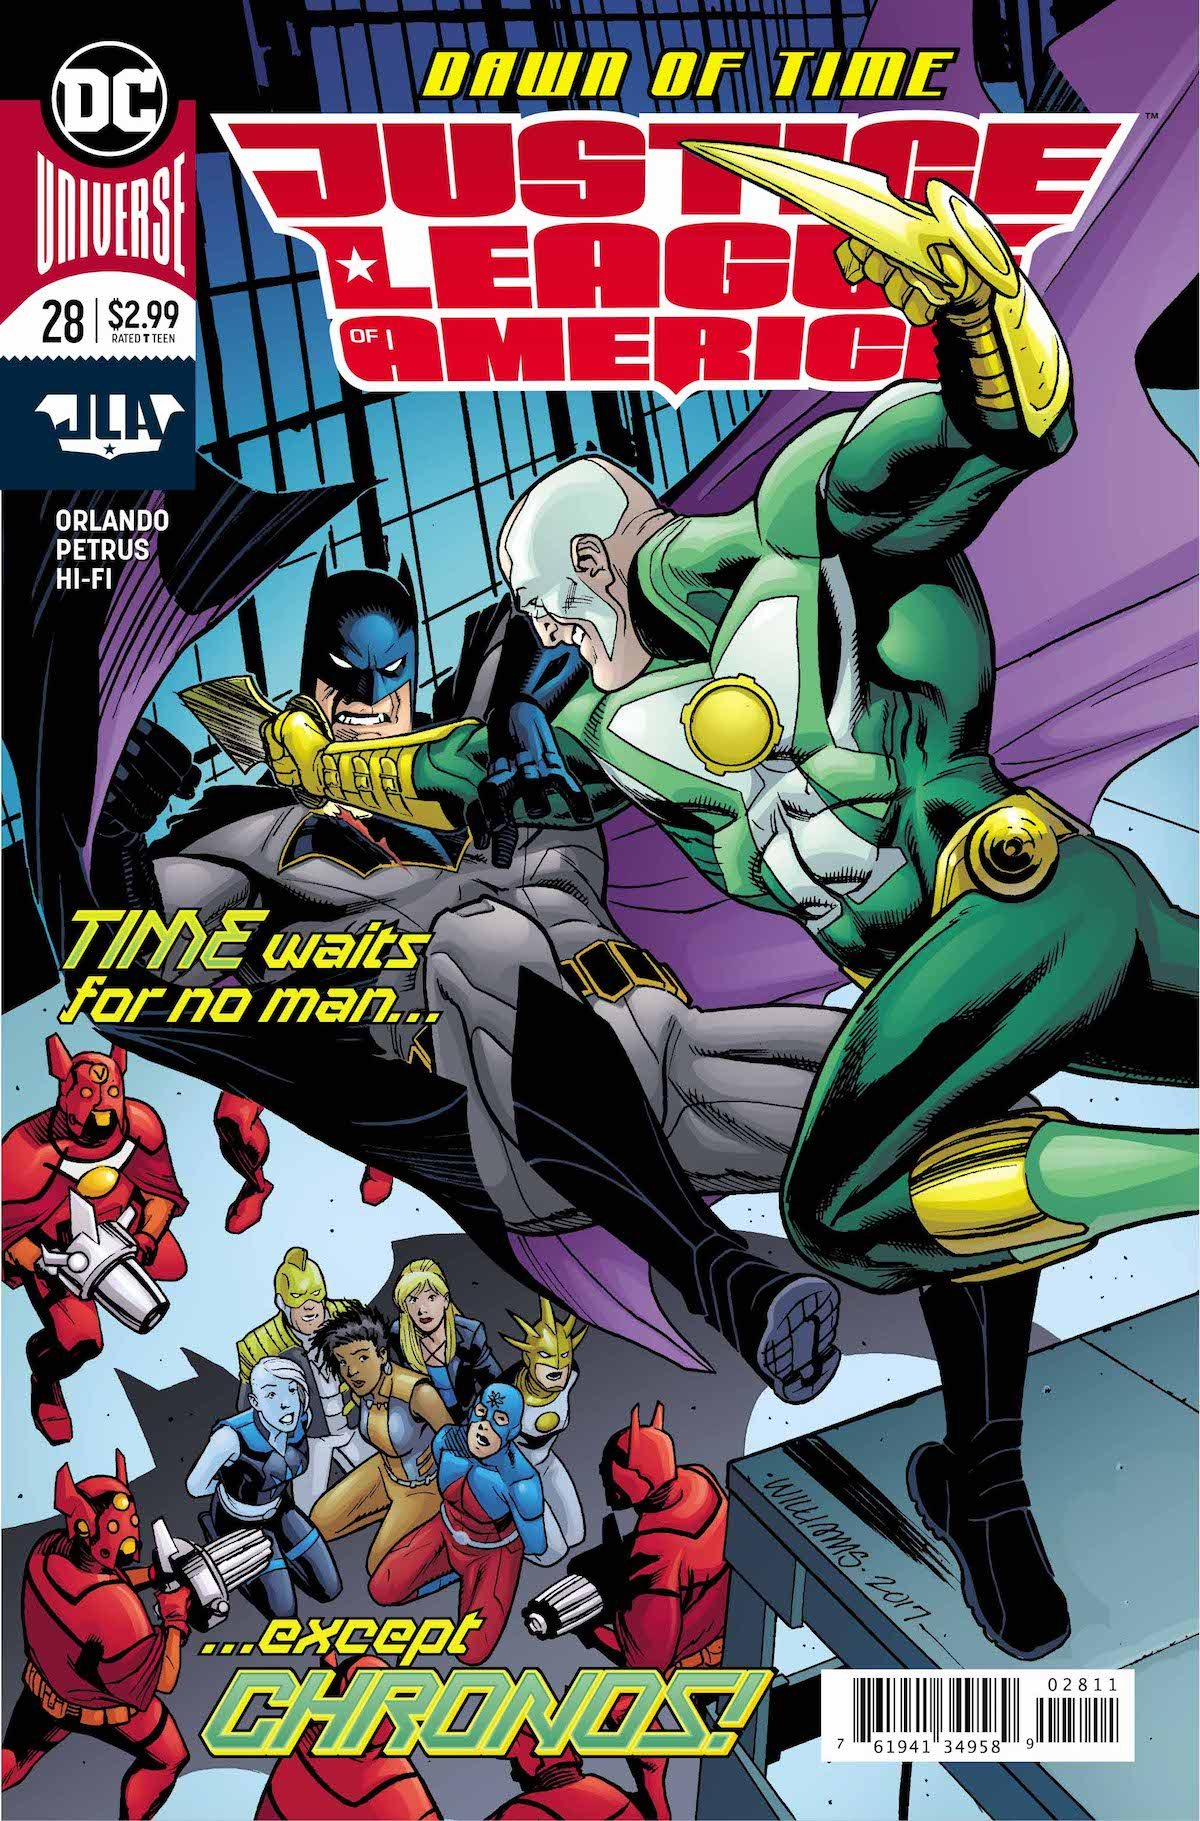 Justice League of America #28 cover